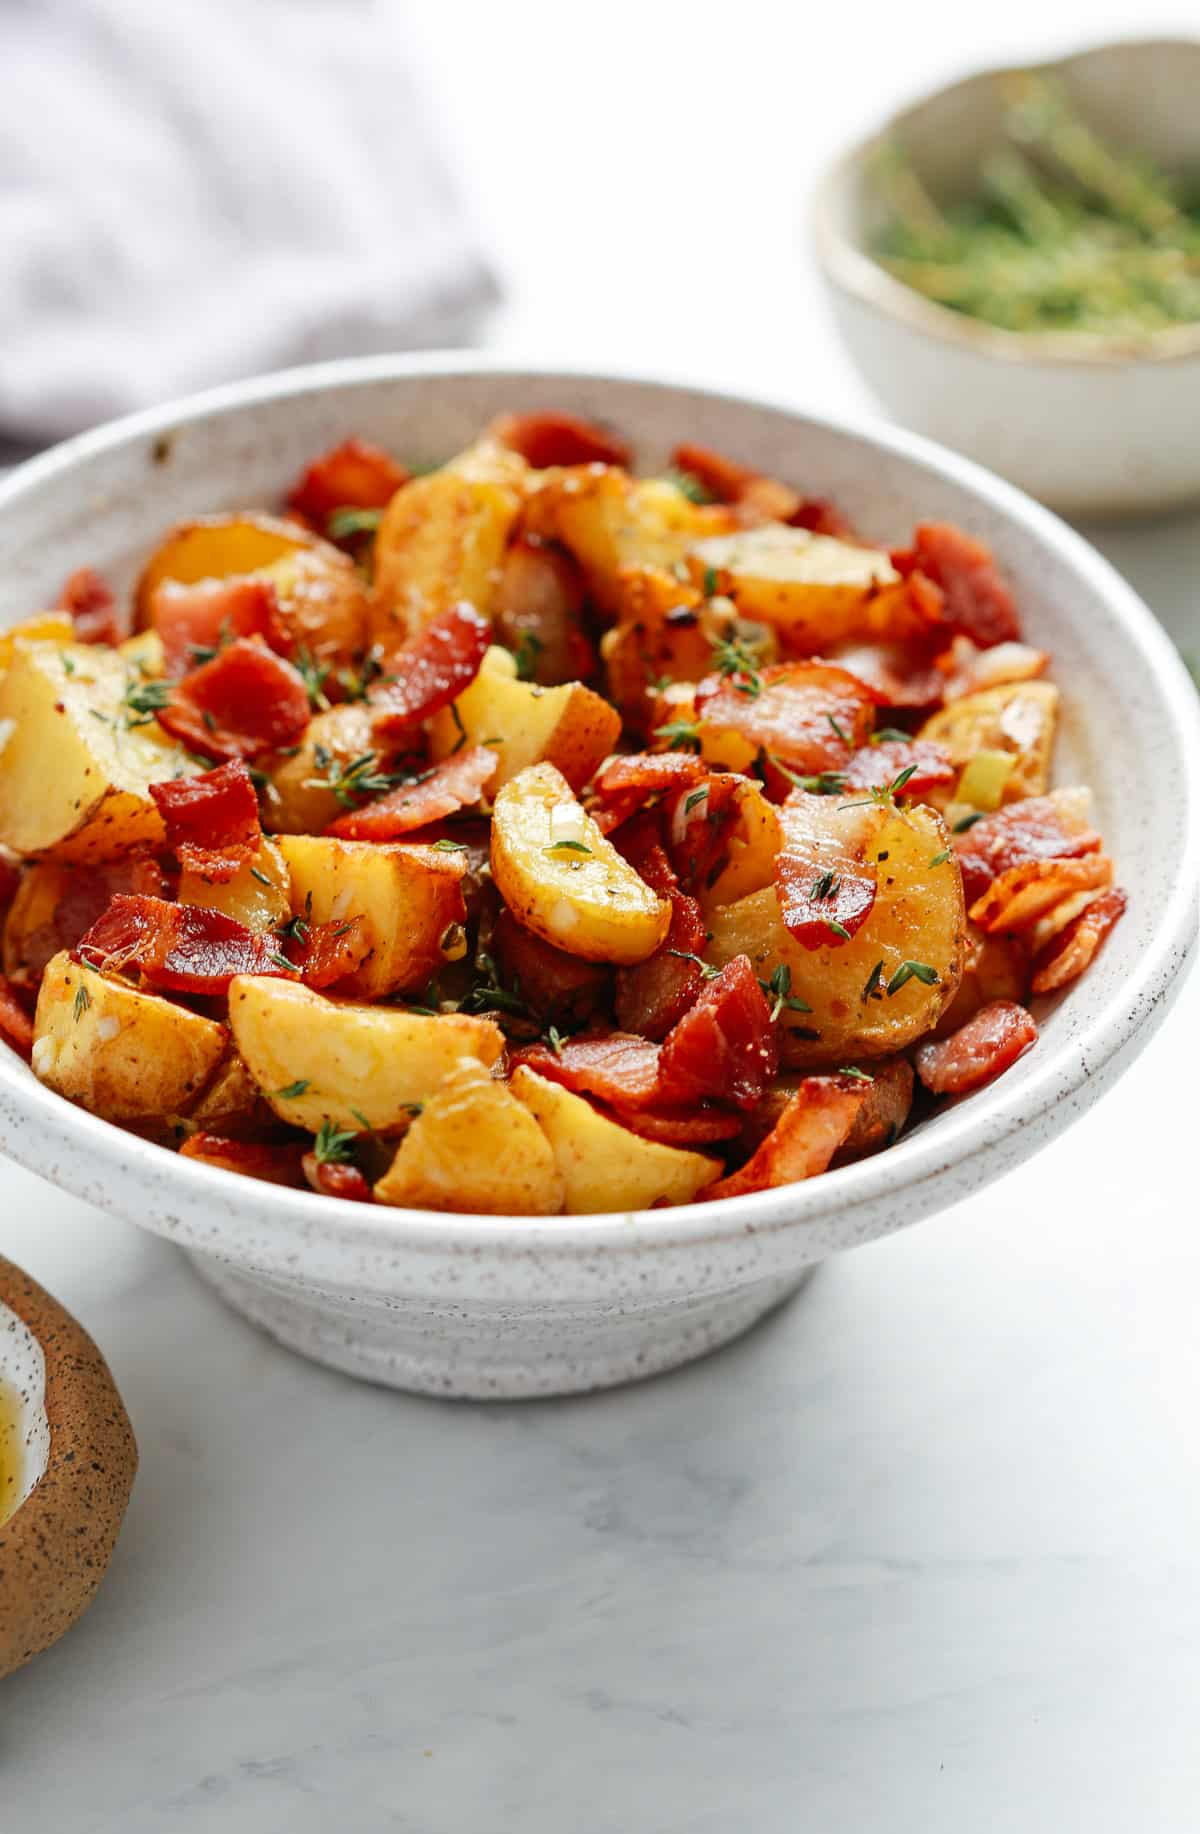 bowl of diced roasted red baby potatoes